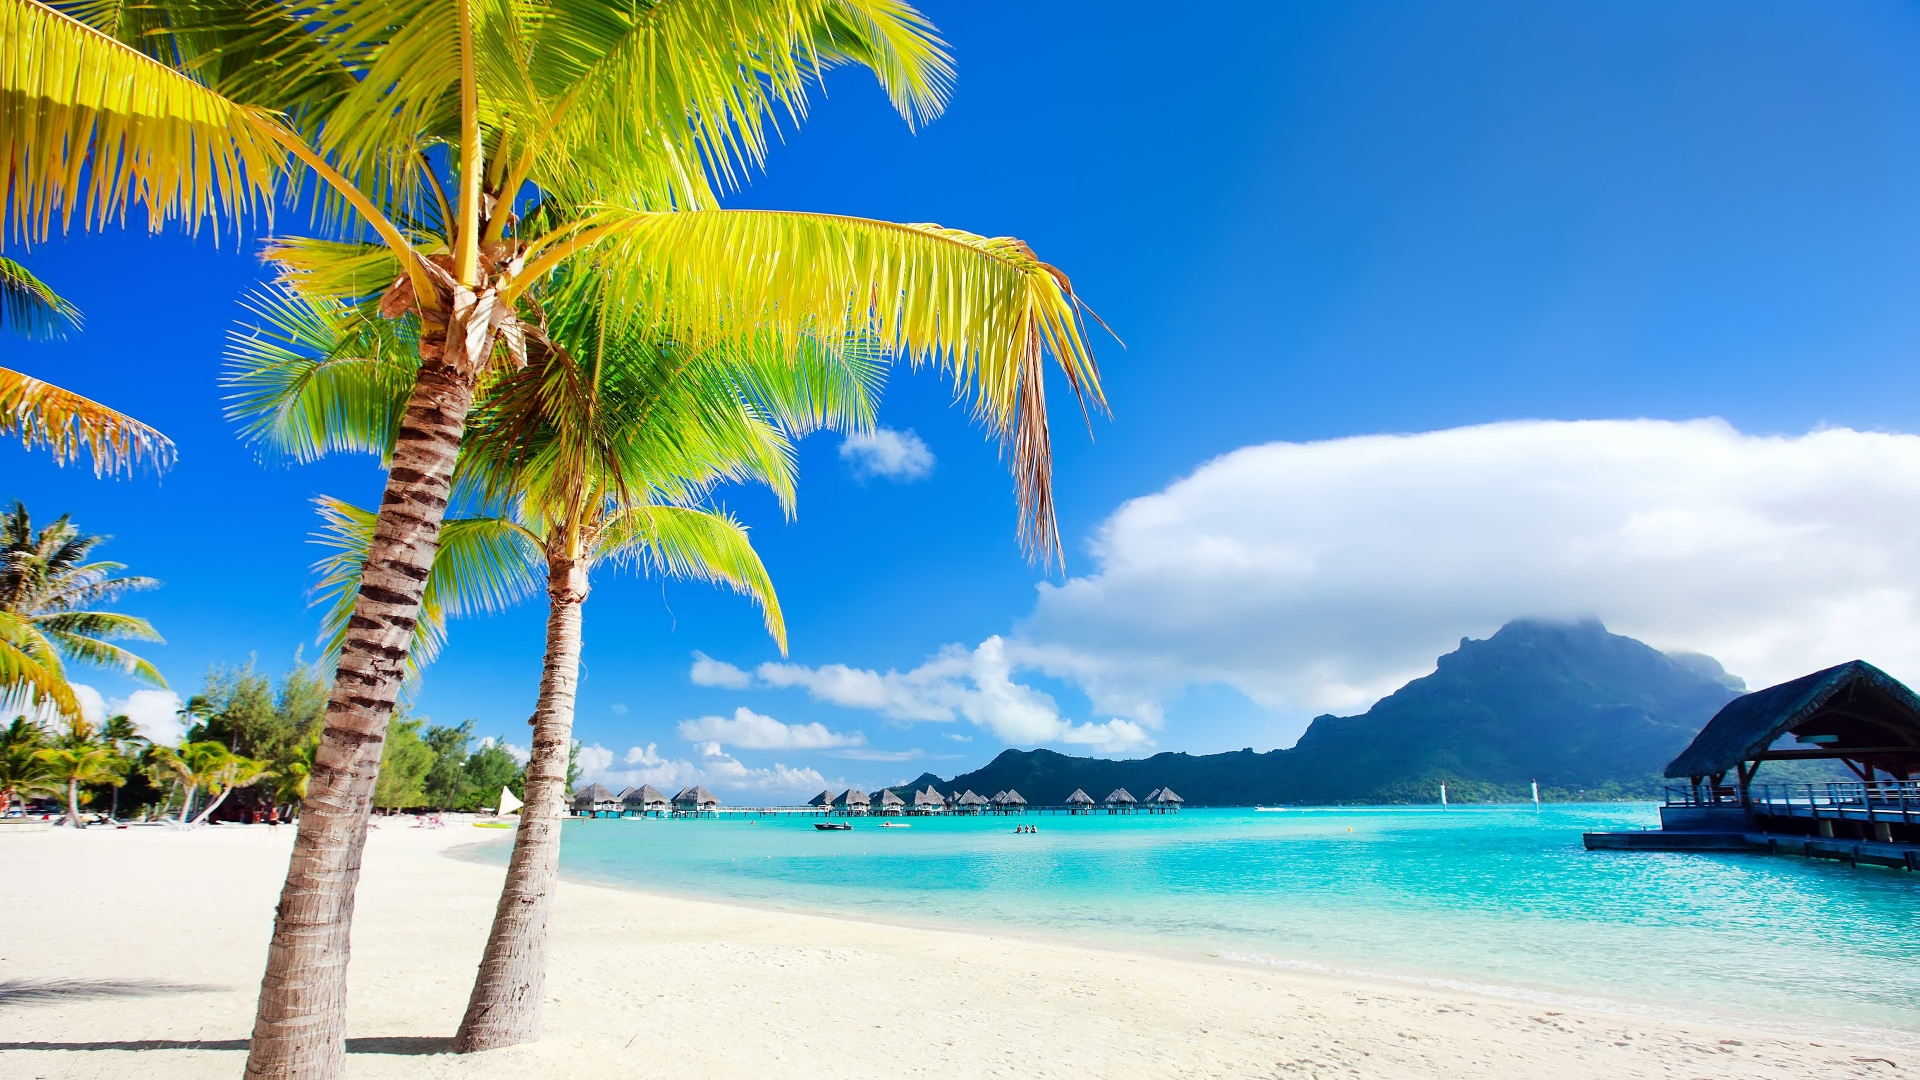 Bora Bora Wallpapers | Full HD Pictures